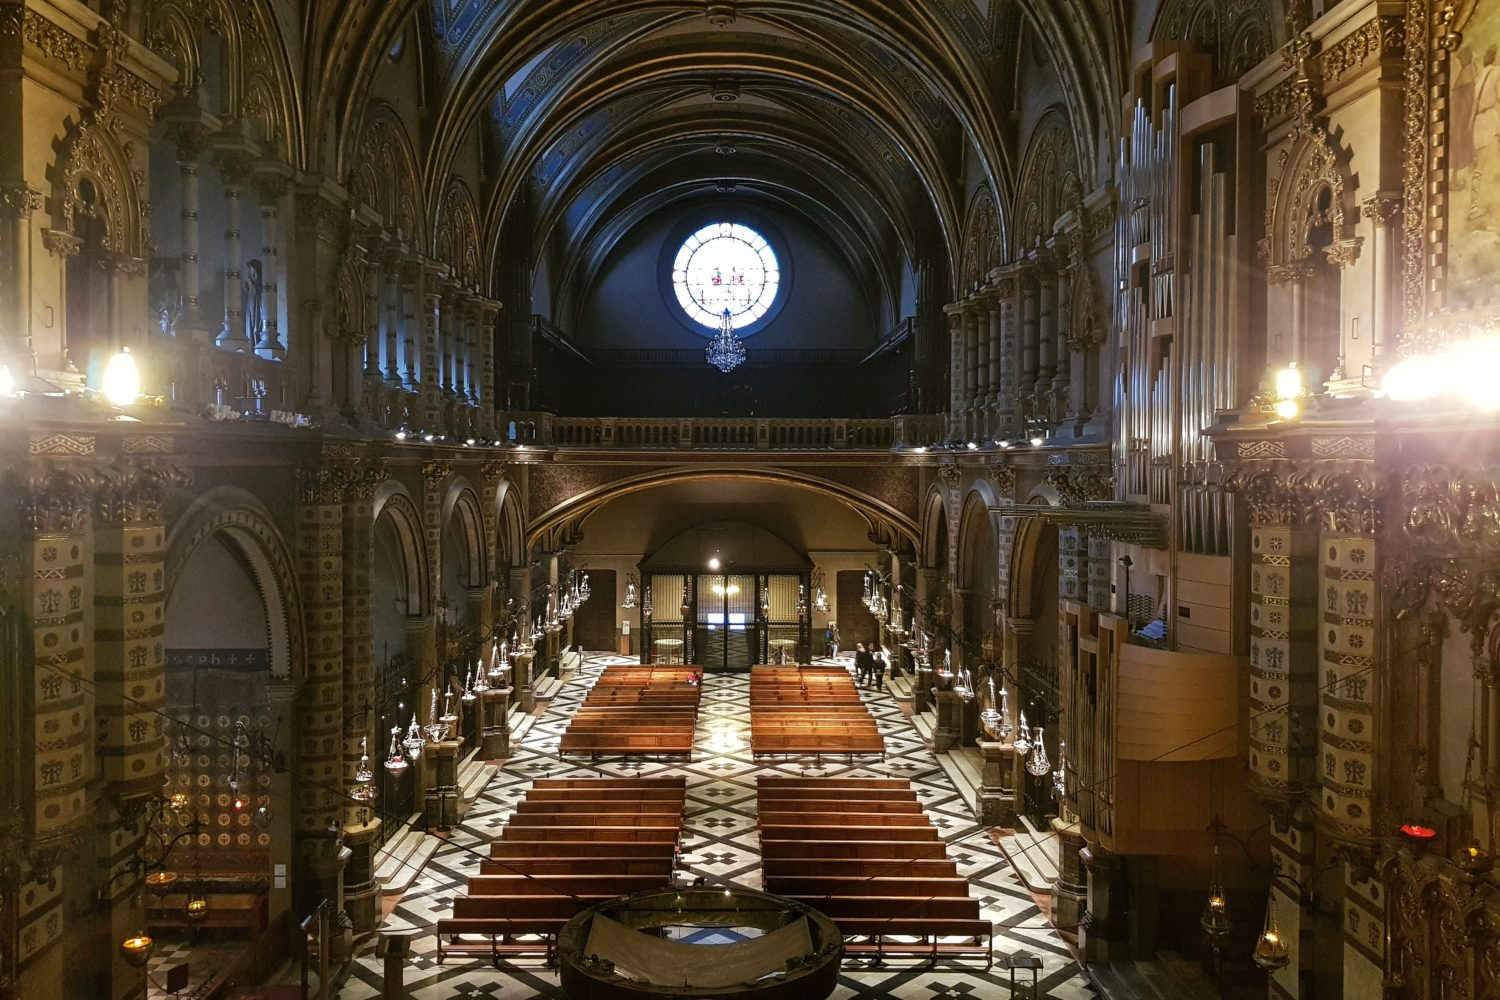 The interior of the Montserrat Monastery in Barcelona.